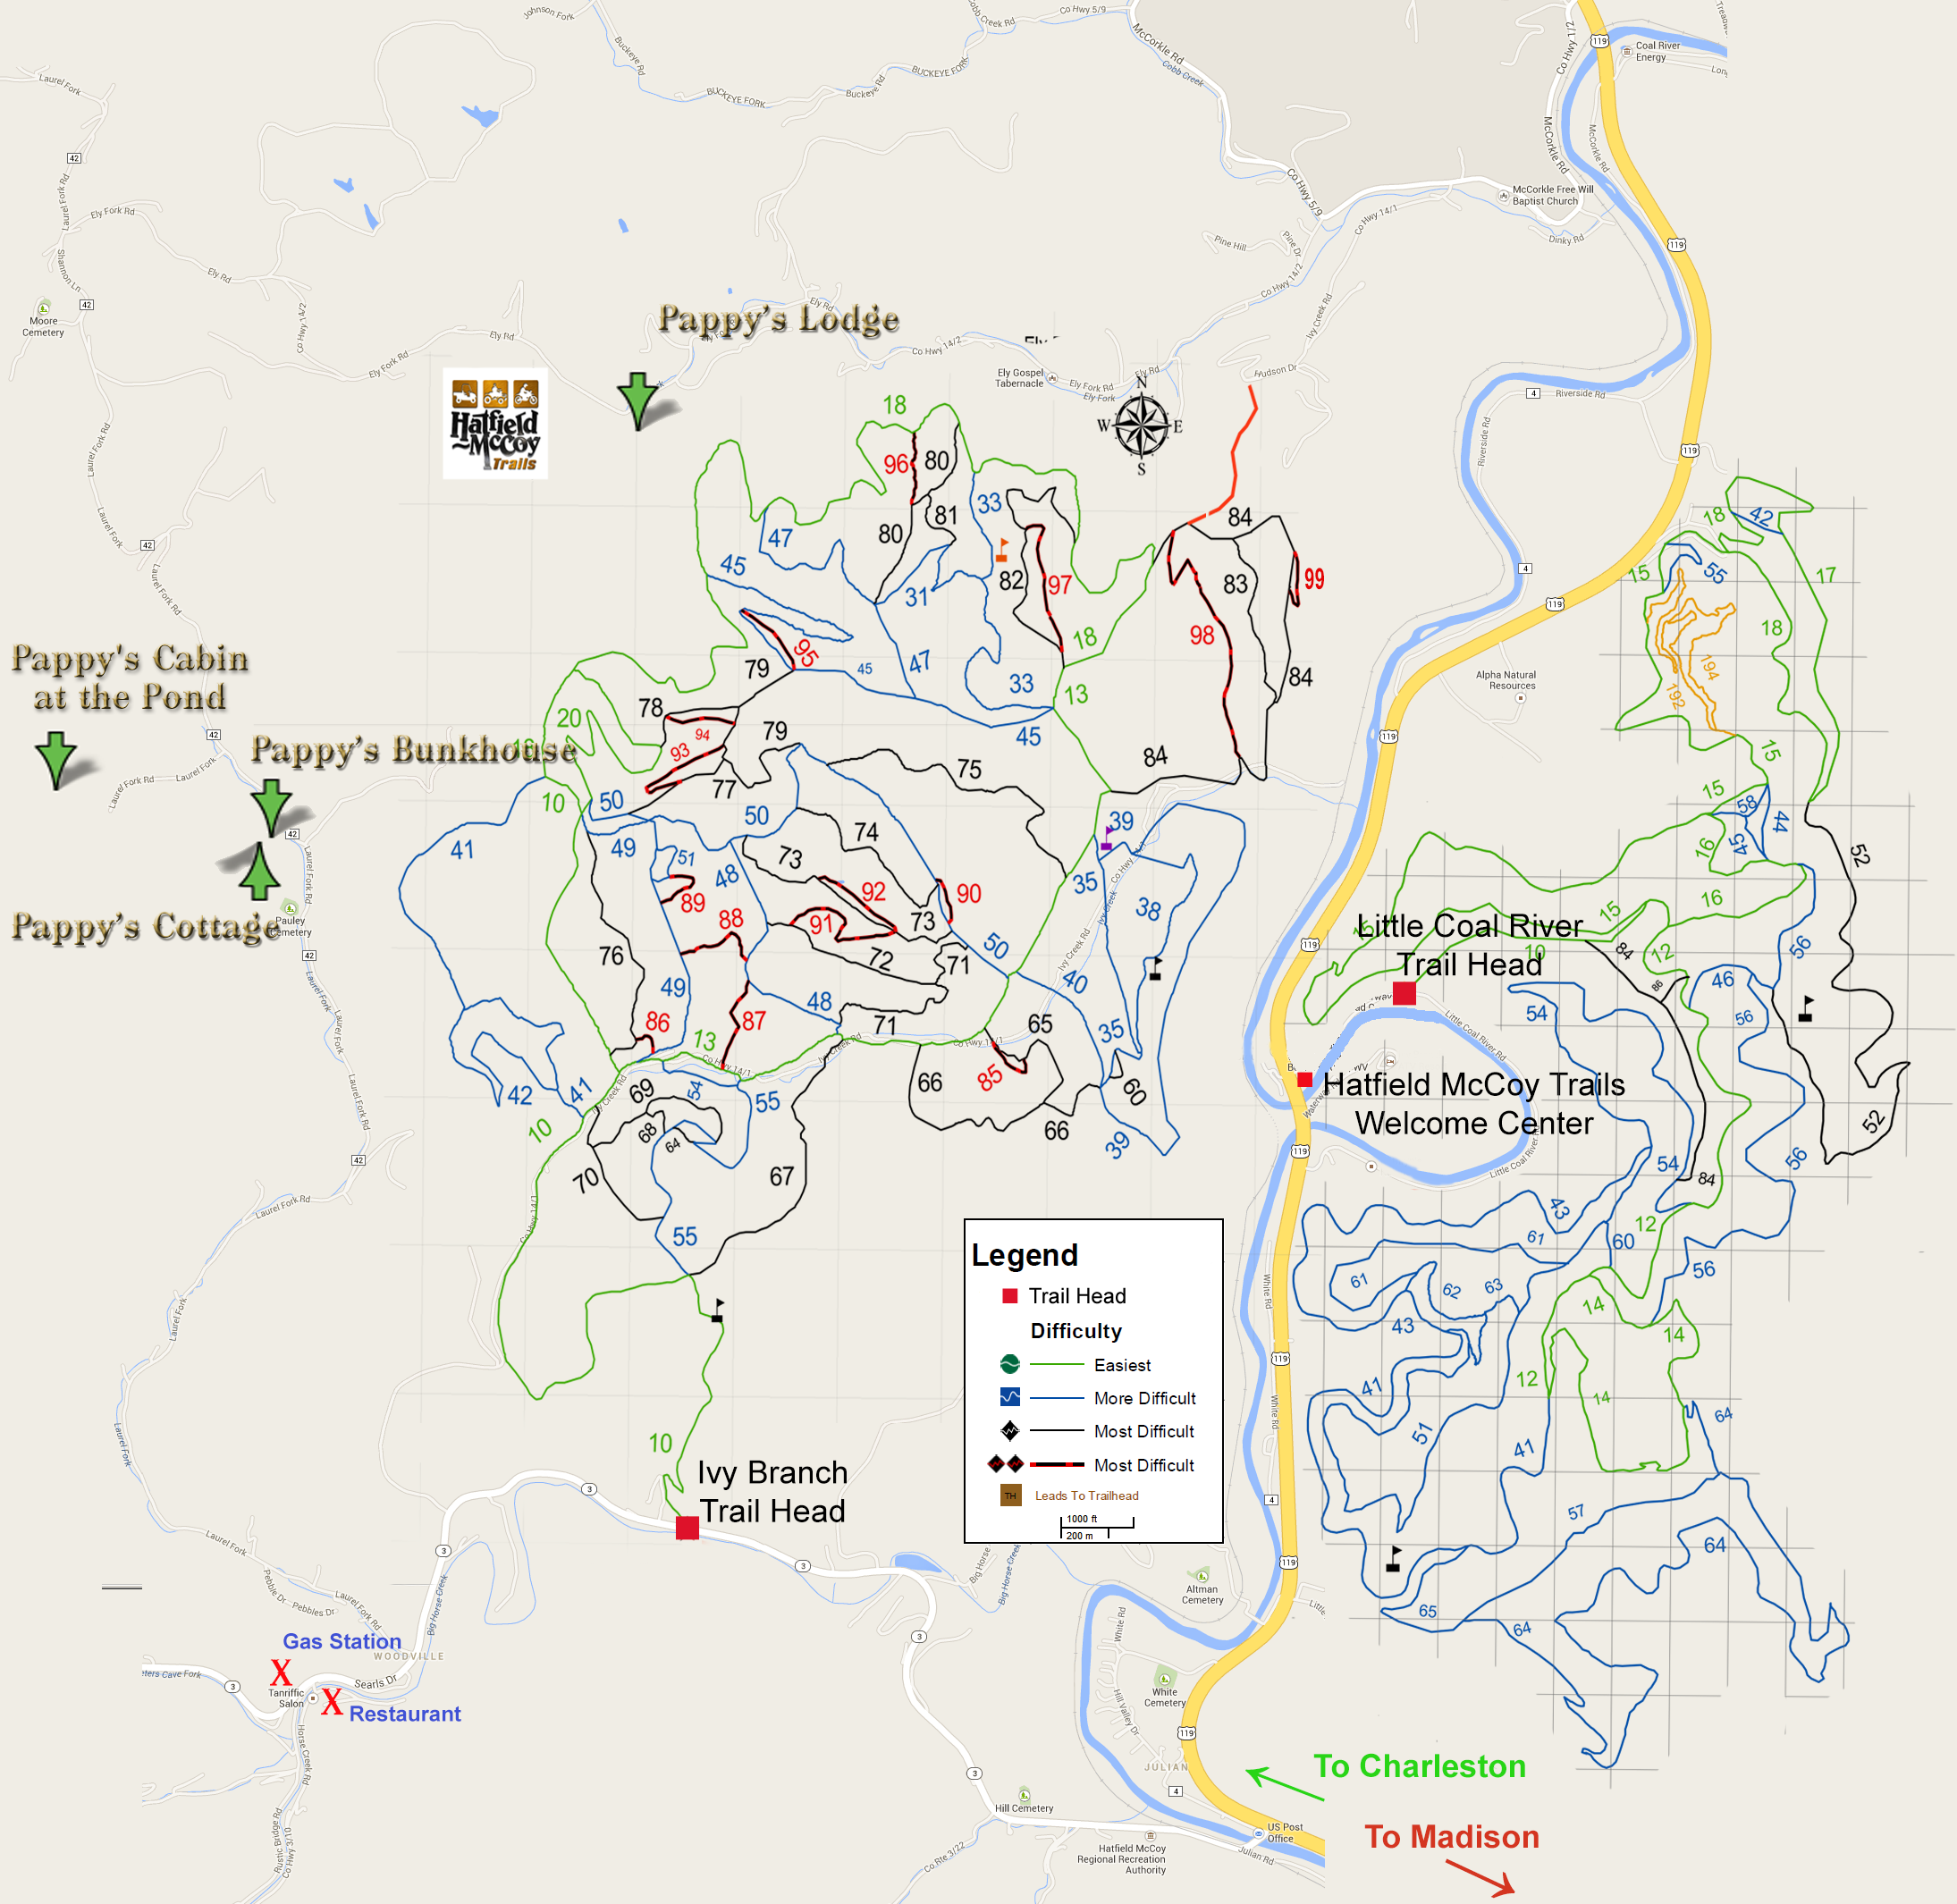 ivy-branch-and-little-coal-river-trail-map-hatfield-mccoy-trails.png